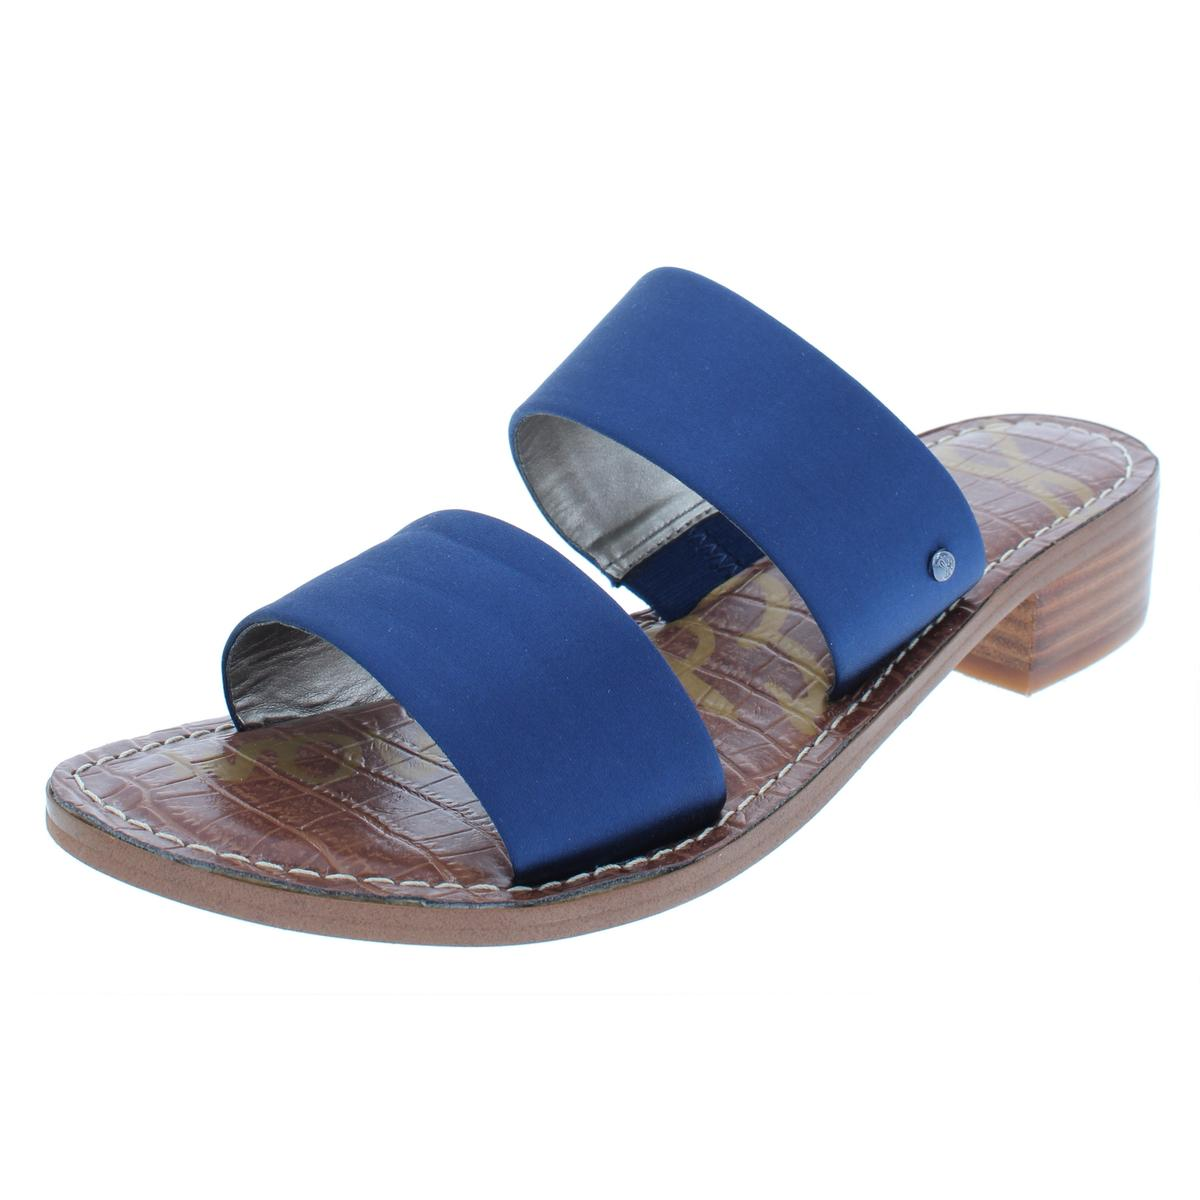 6ae9e438a341 Details about Sam Edelman Womens Jeni Satin Low Casual Evening Sandals  Shoes BHFO 8786